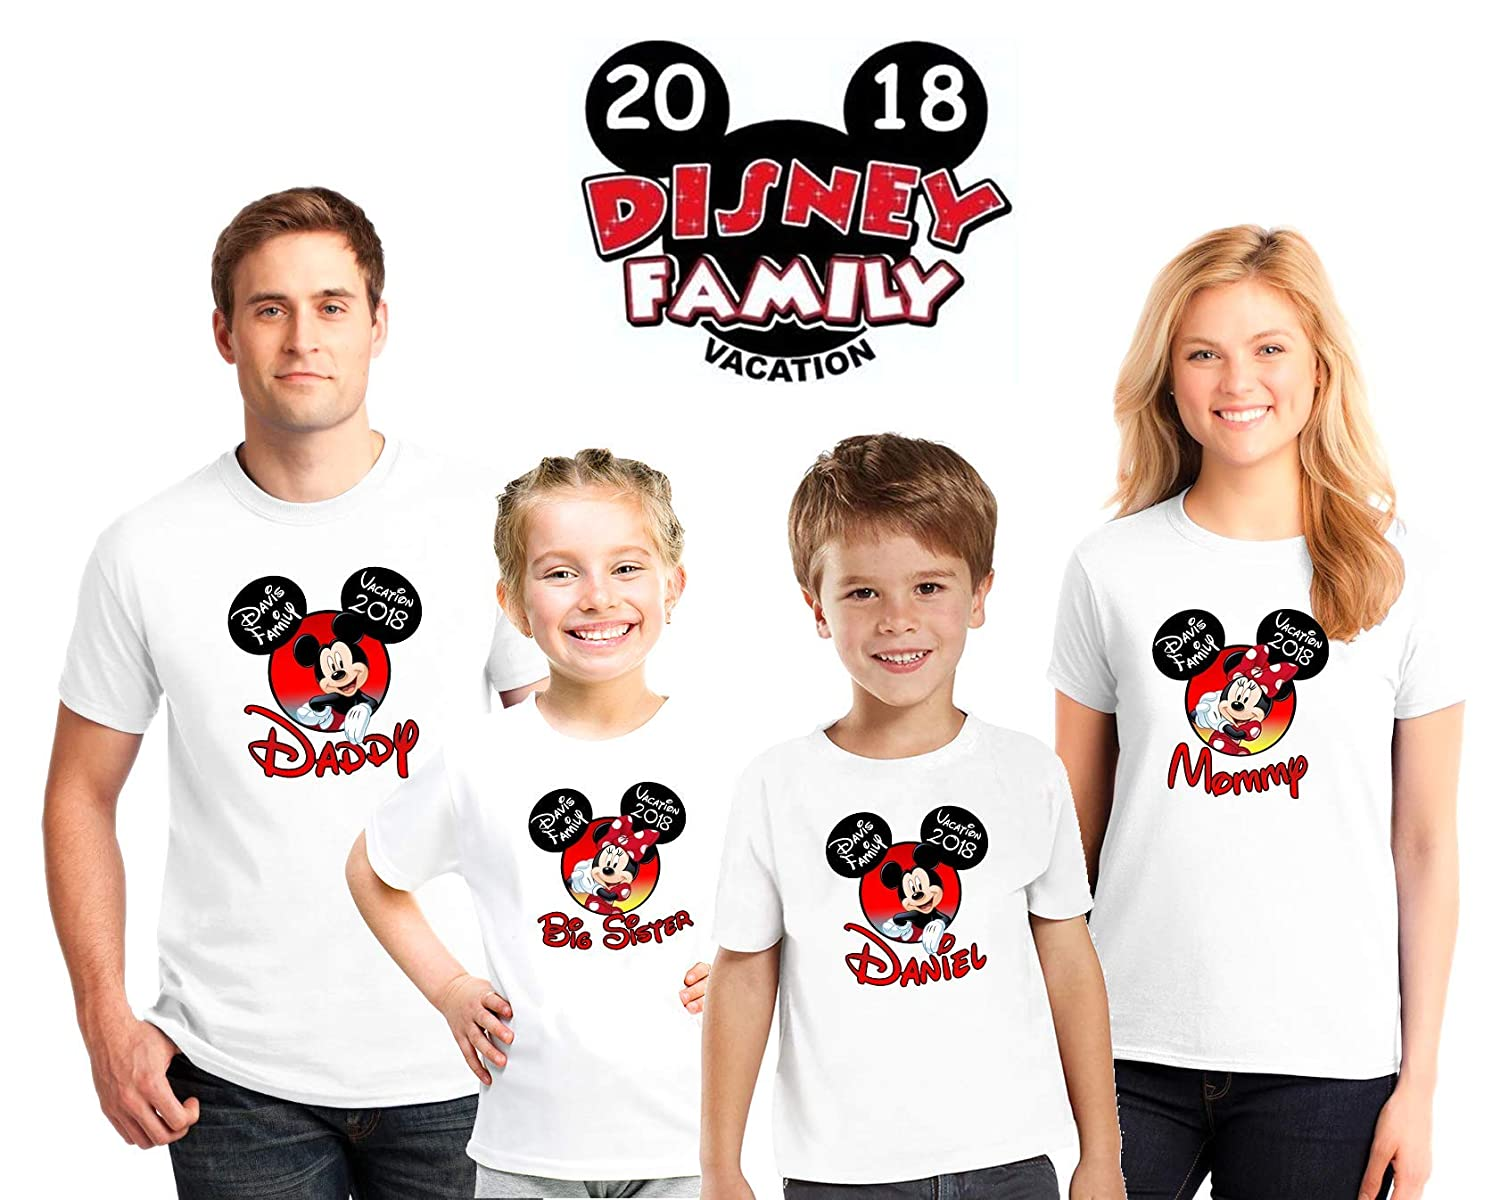 Disney Vacation family matching custom shirts, Family vacation Disney shirts,Mickey Minnie mouse Personalized shirt, Personalized Disney Shirts for Family